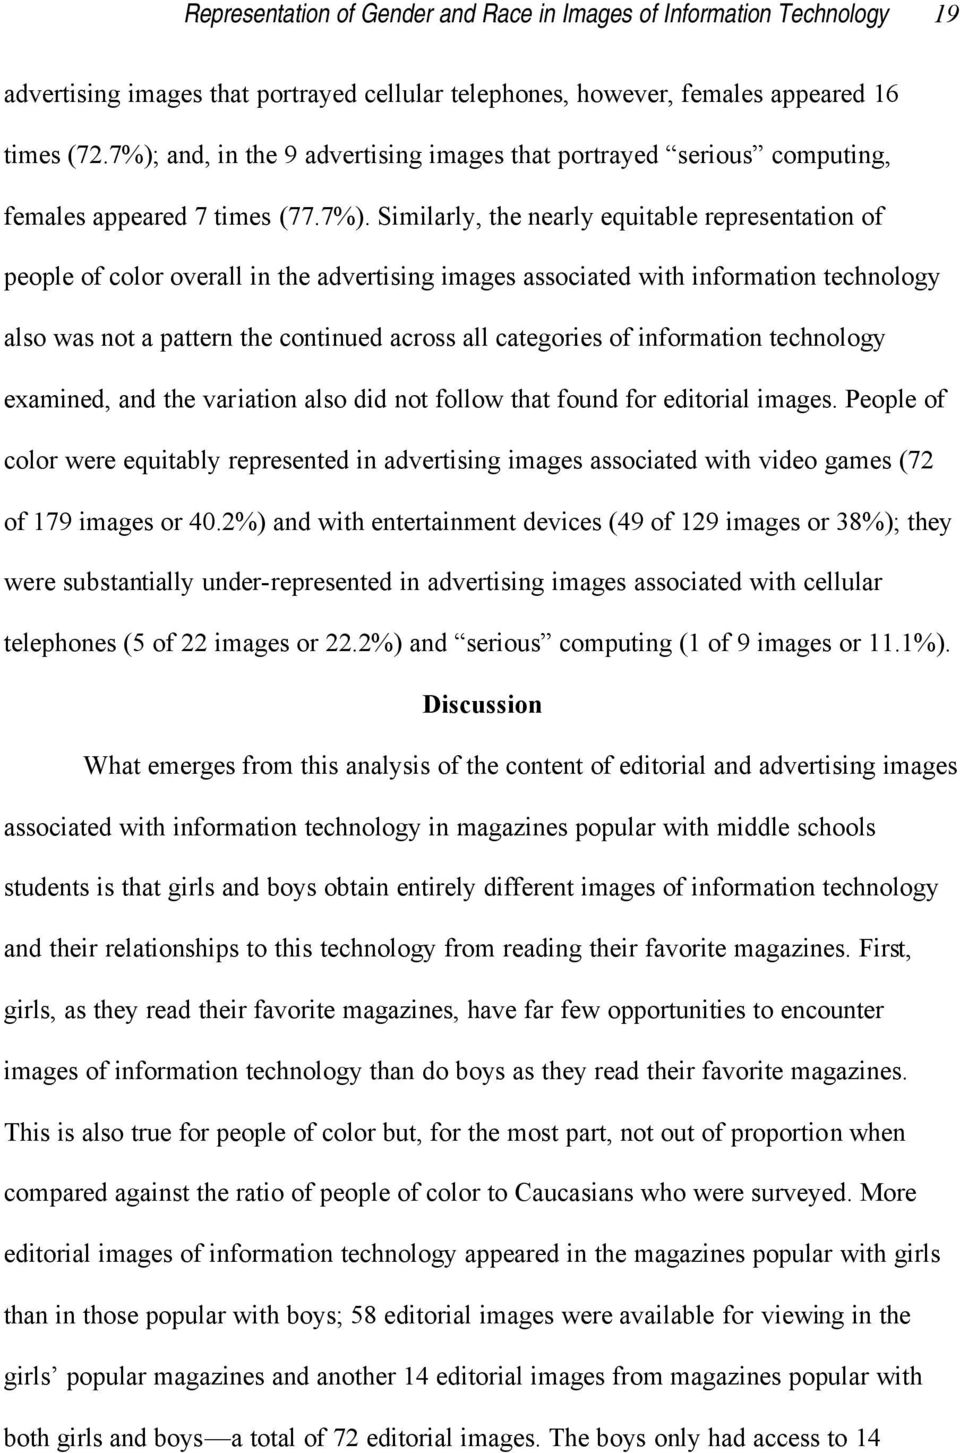 images associated with information technology also was not a pattern the continued across all categories of information technology examined, and the variation also did not follow that found for